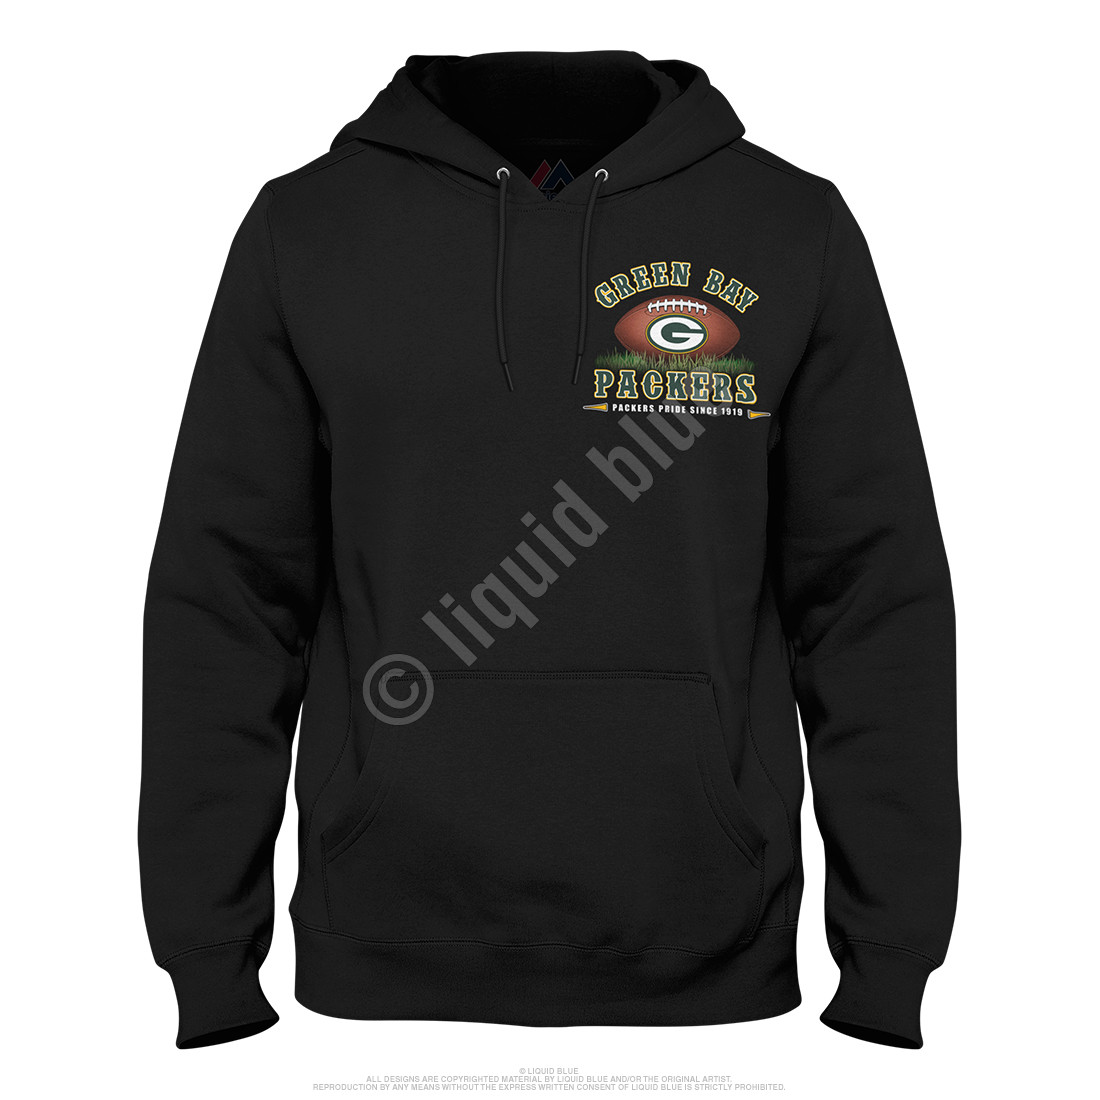 Green Bay Packers End Zone Black Hoodie